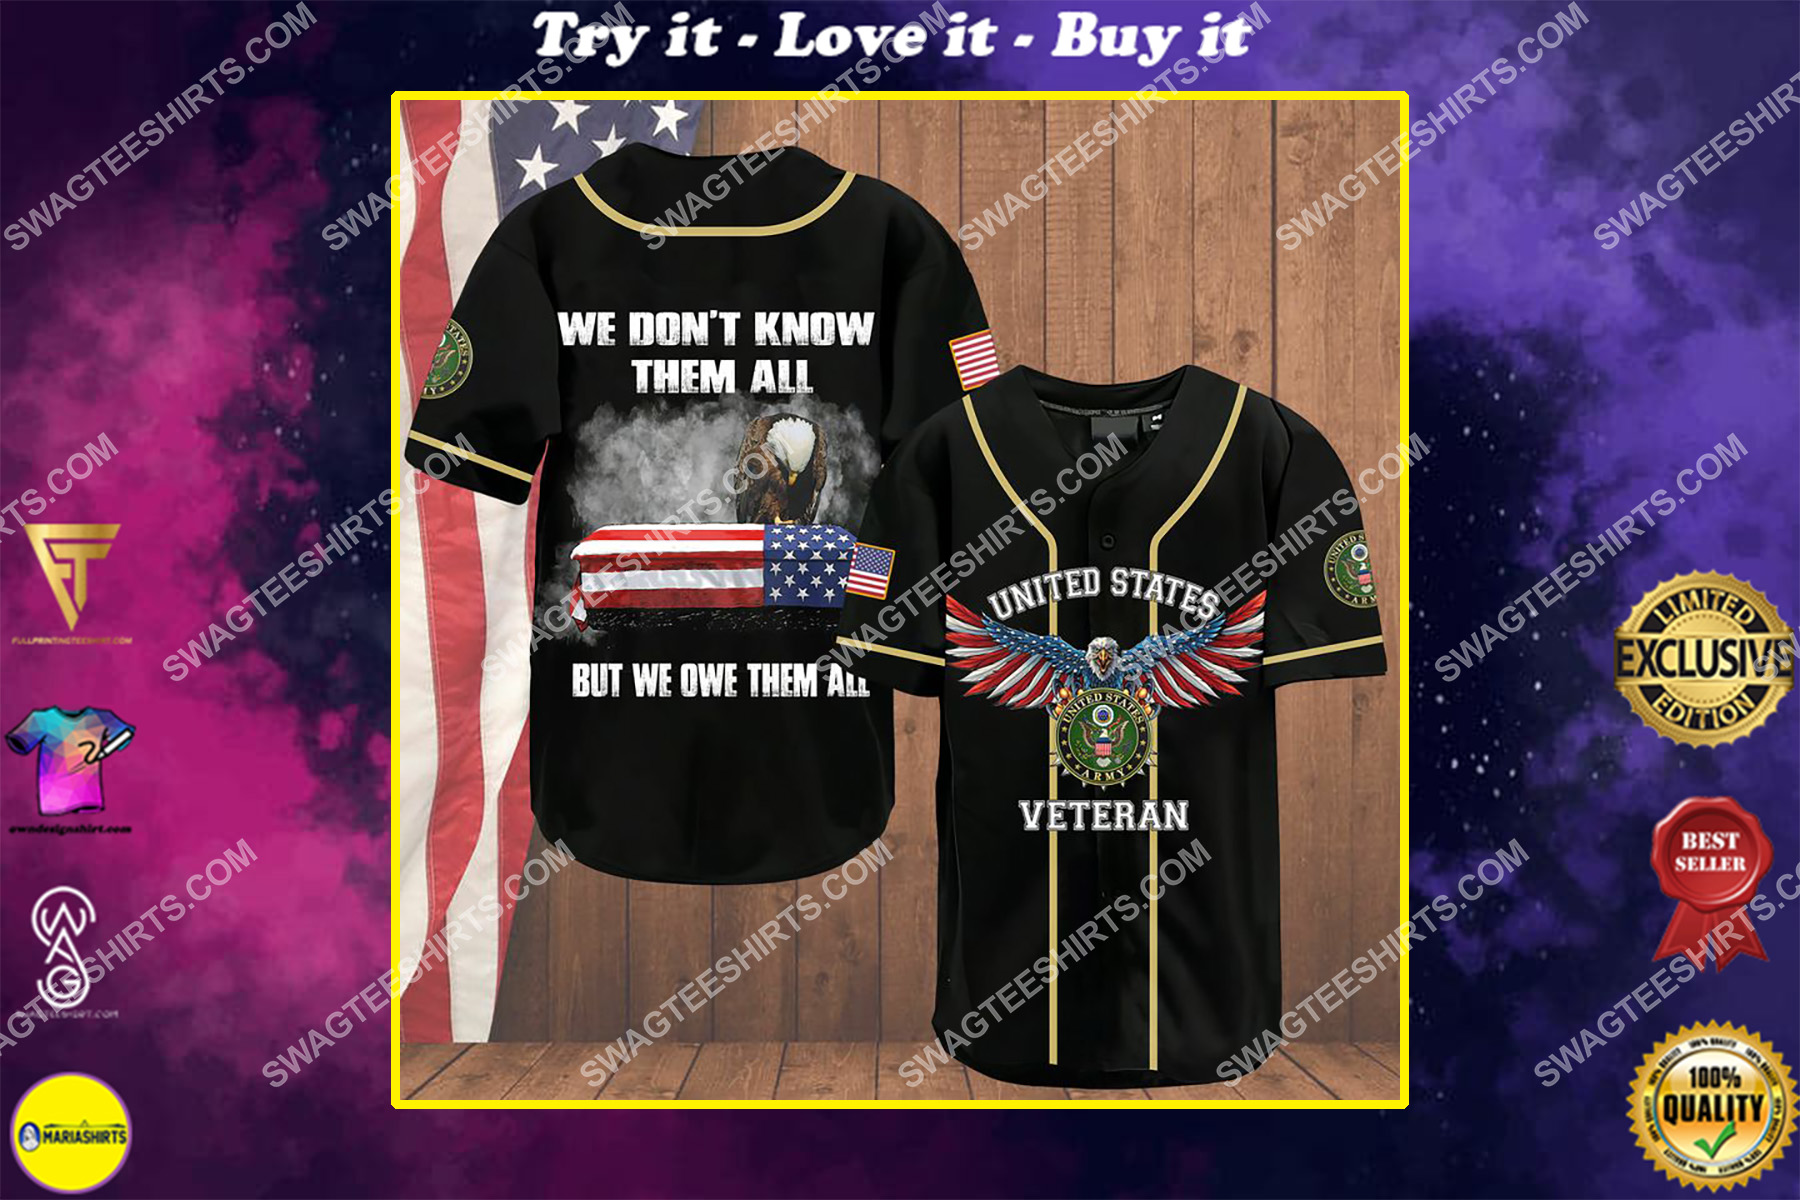 we don't know them all but we owe them all army veteran baseball shirt